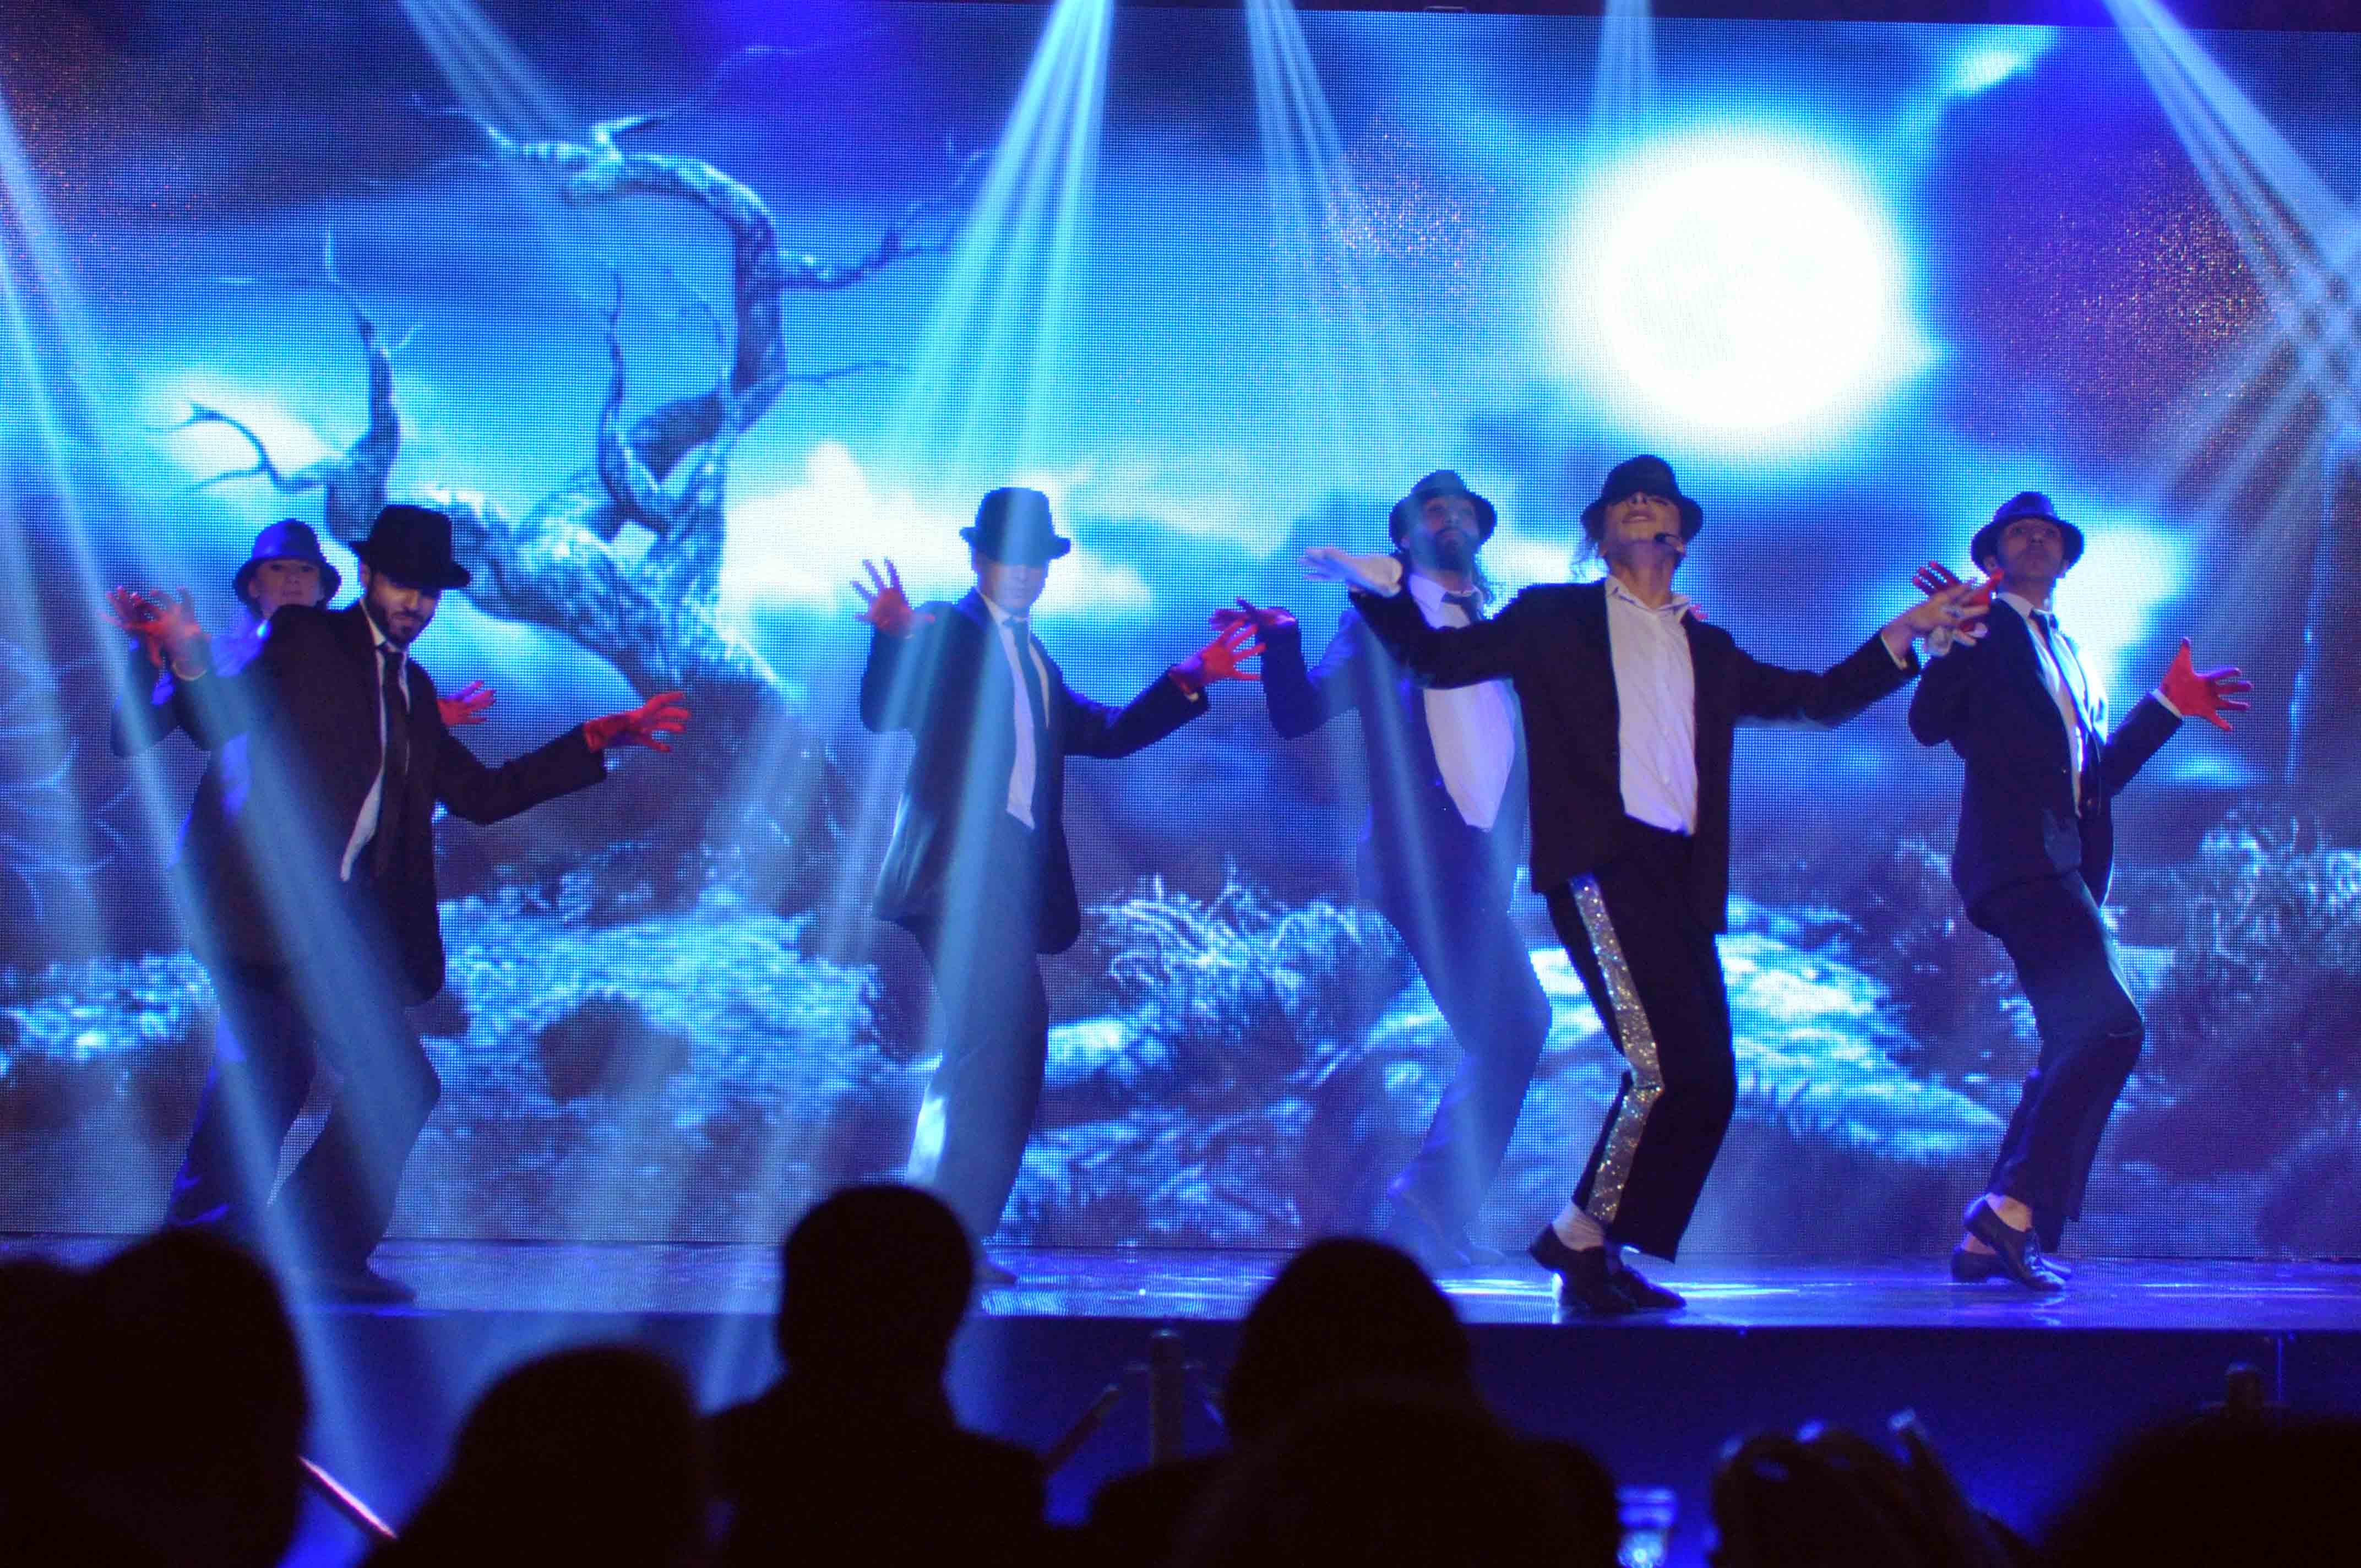 "SIMA Group - winners of 'Arabs Got Talent"" Season 3 - performed a routine impersonating Michael Jackson prior to the press conference. (Image: MBC)"